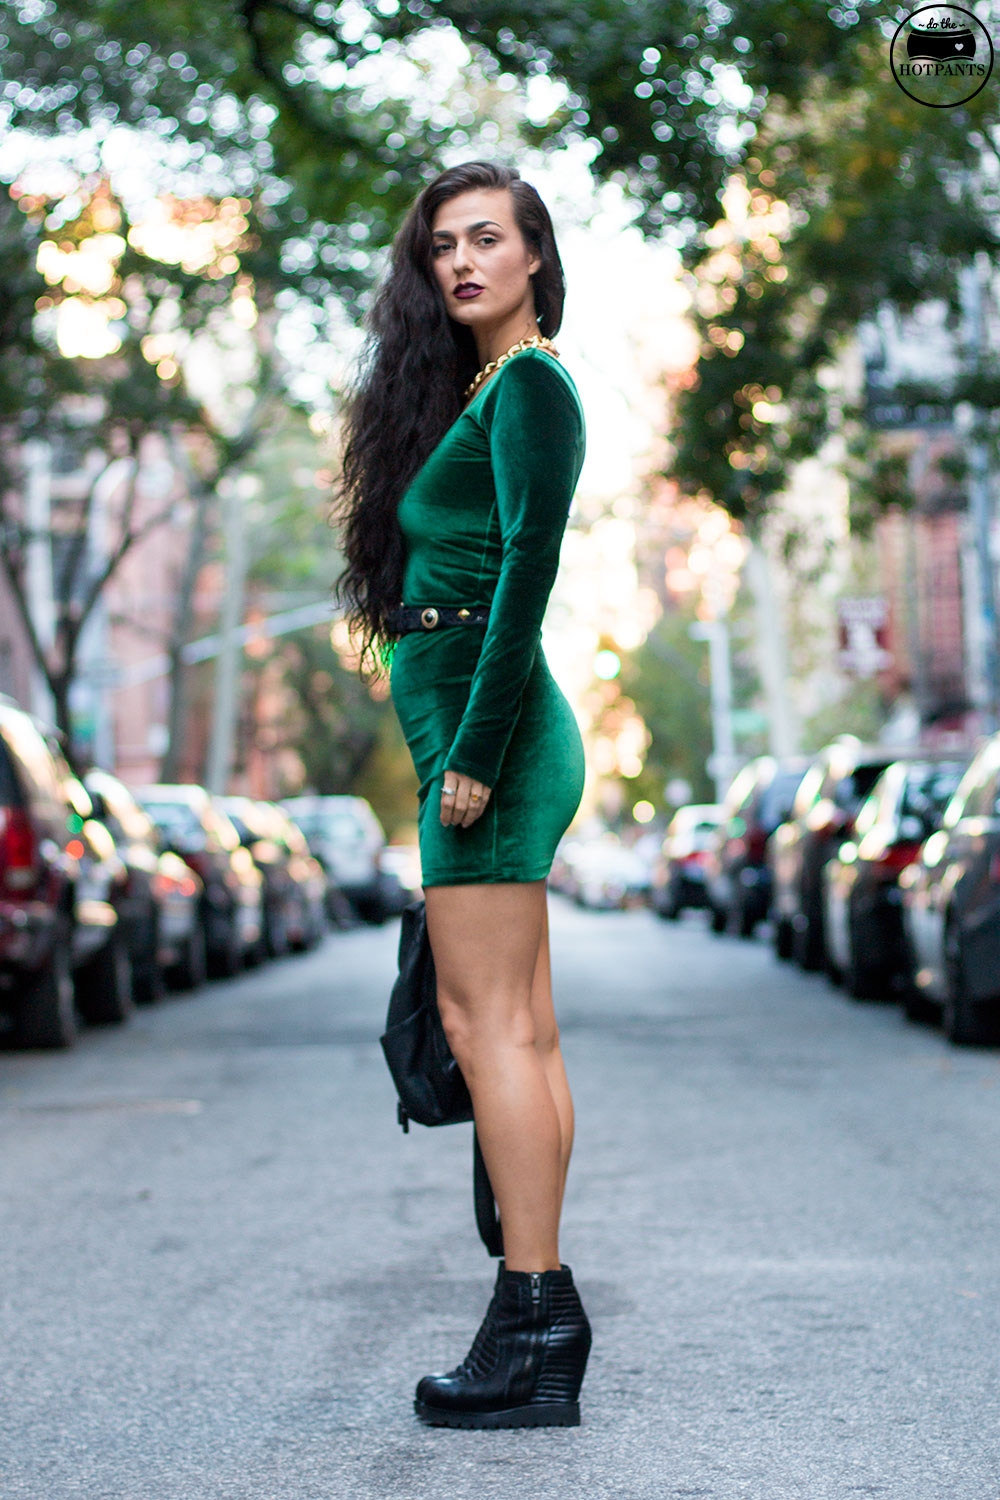 Do The Hotpants Dana Suchow Green Velvet Bodycon Dress Minidress Curvy Woman Long Hairstyle Wavy Hair IMG_3457